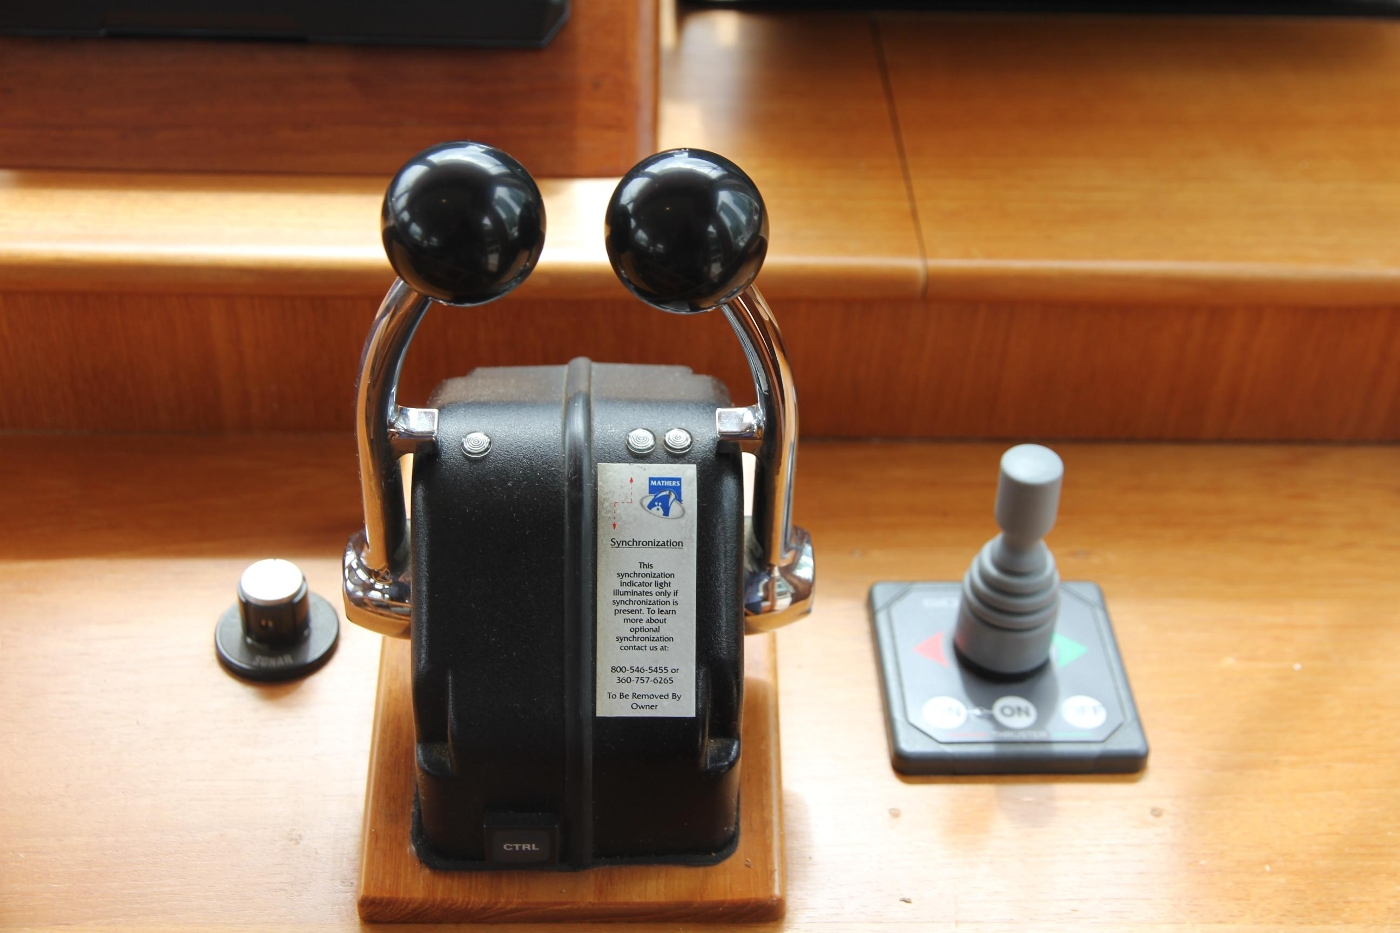 2001 Grand Banks 42 Classic, Engine and Thruster Controls